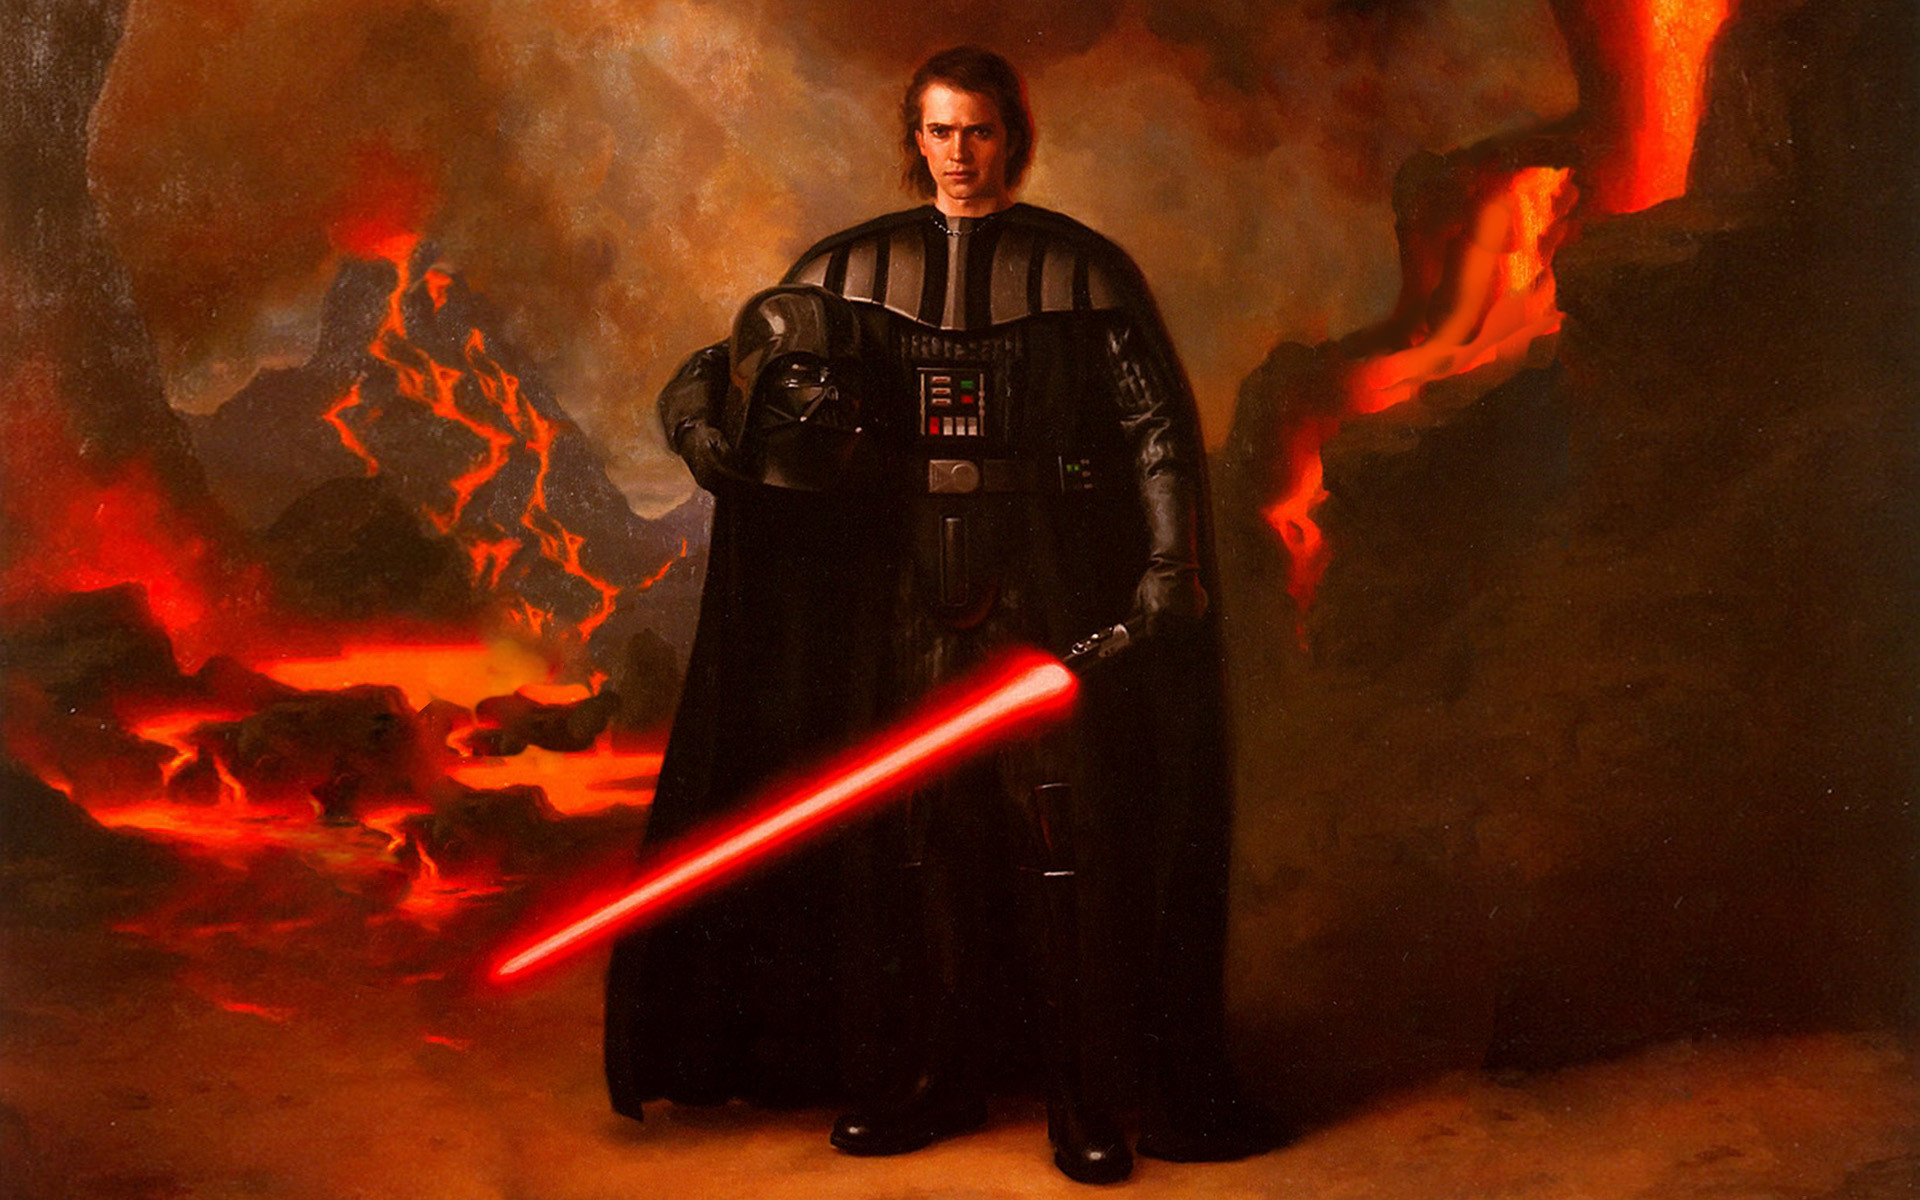 Star Wars Anakin Skywalker Wallpaper: Star Wars Anakin Skywalker Wallpaper (75+ Images